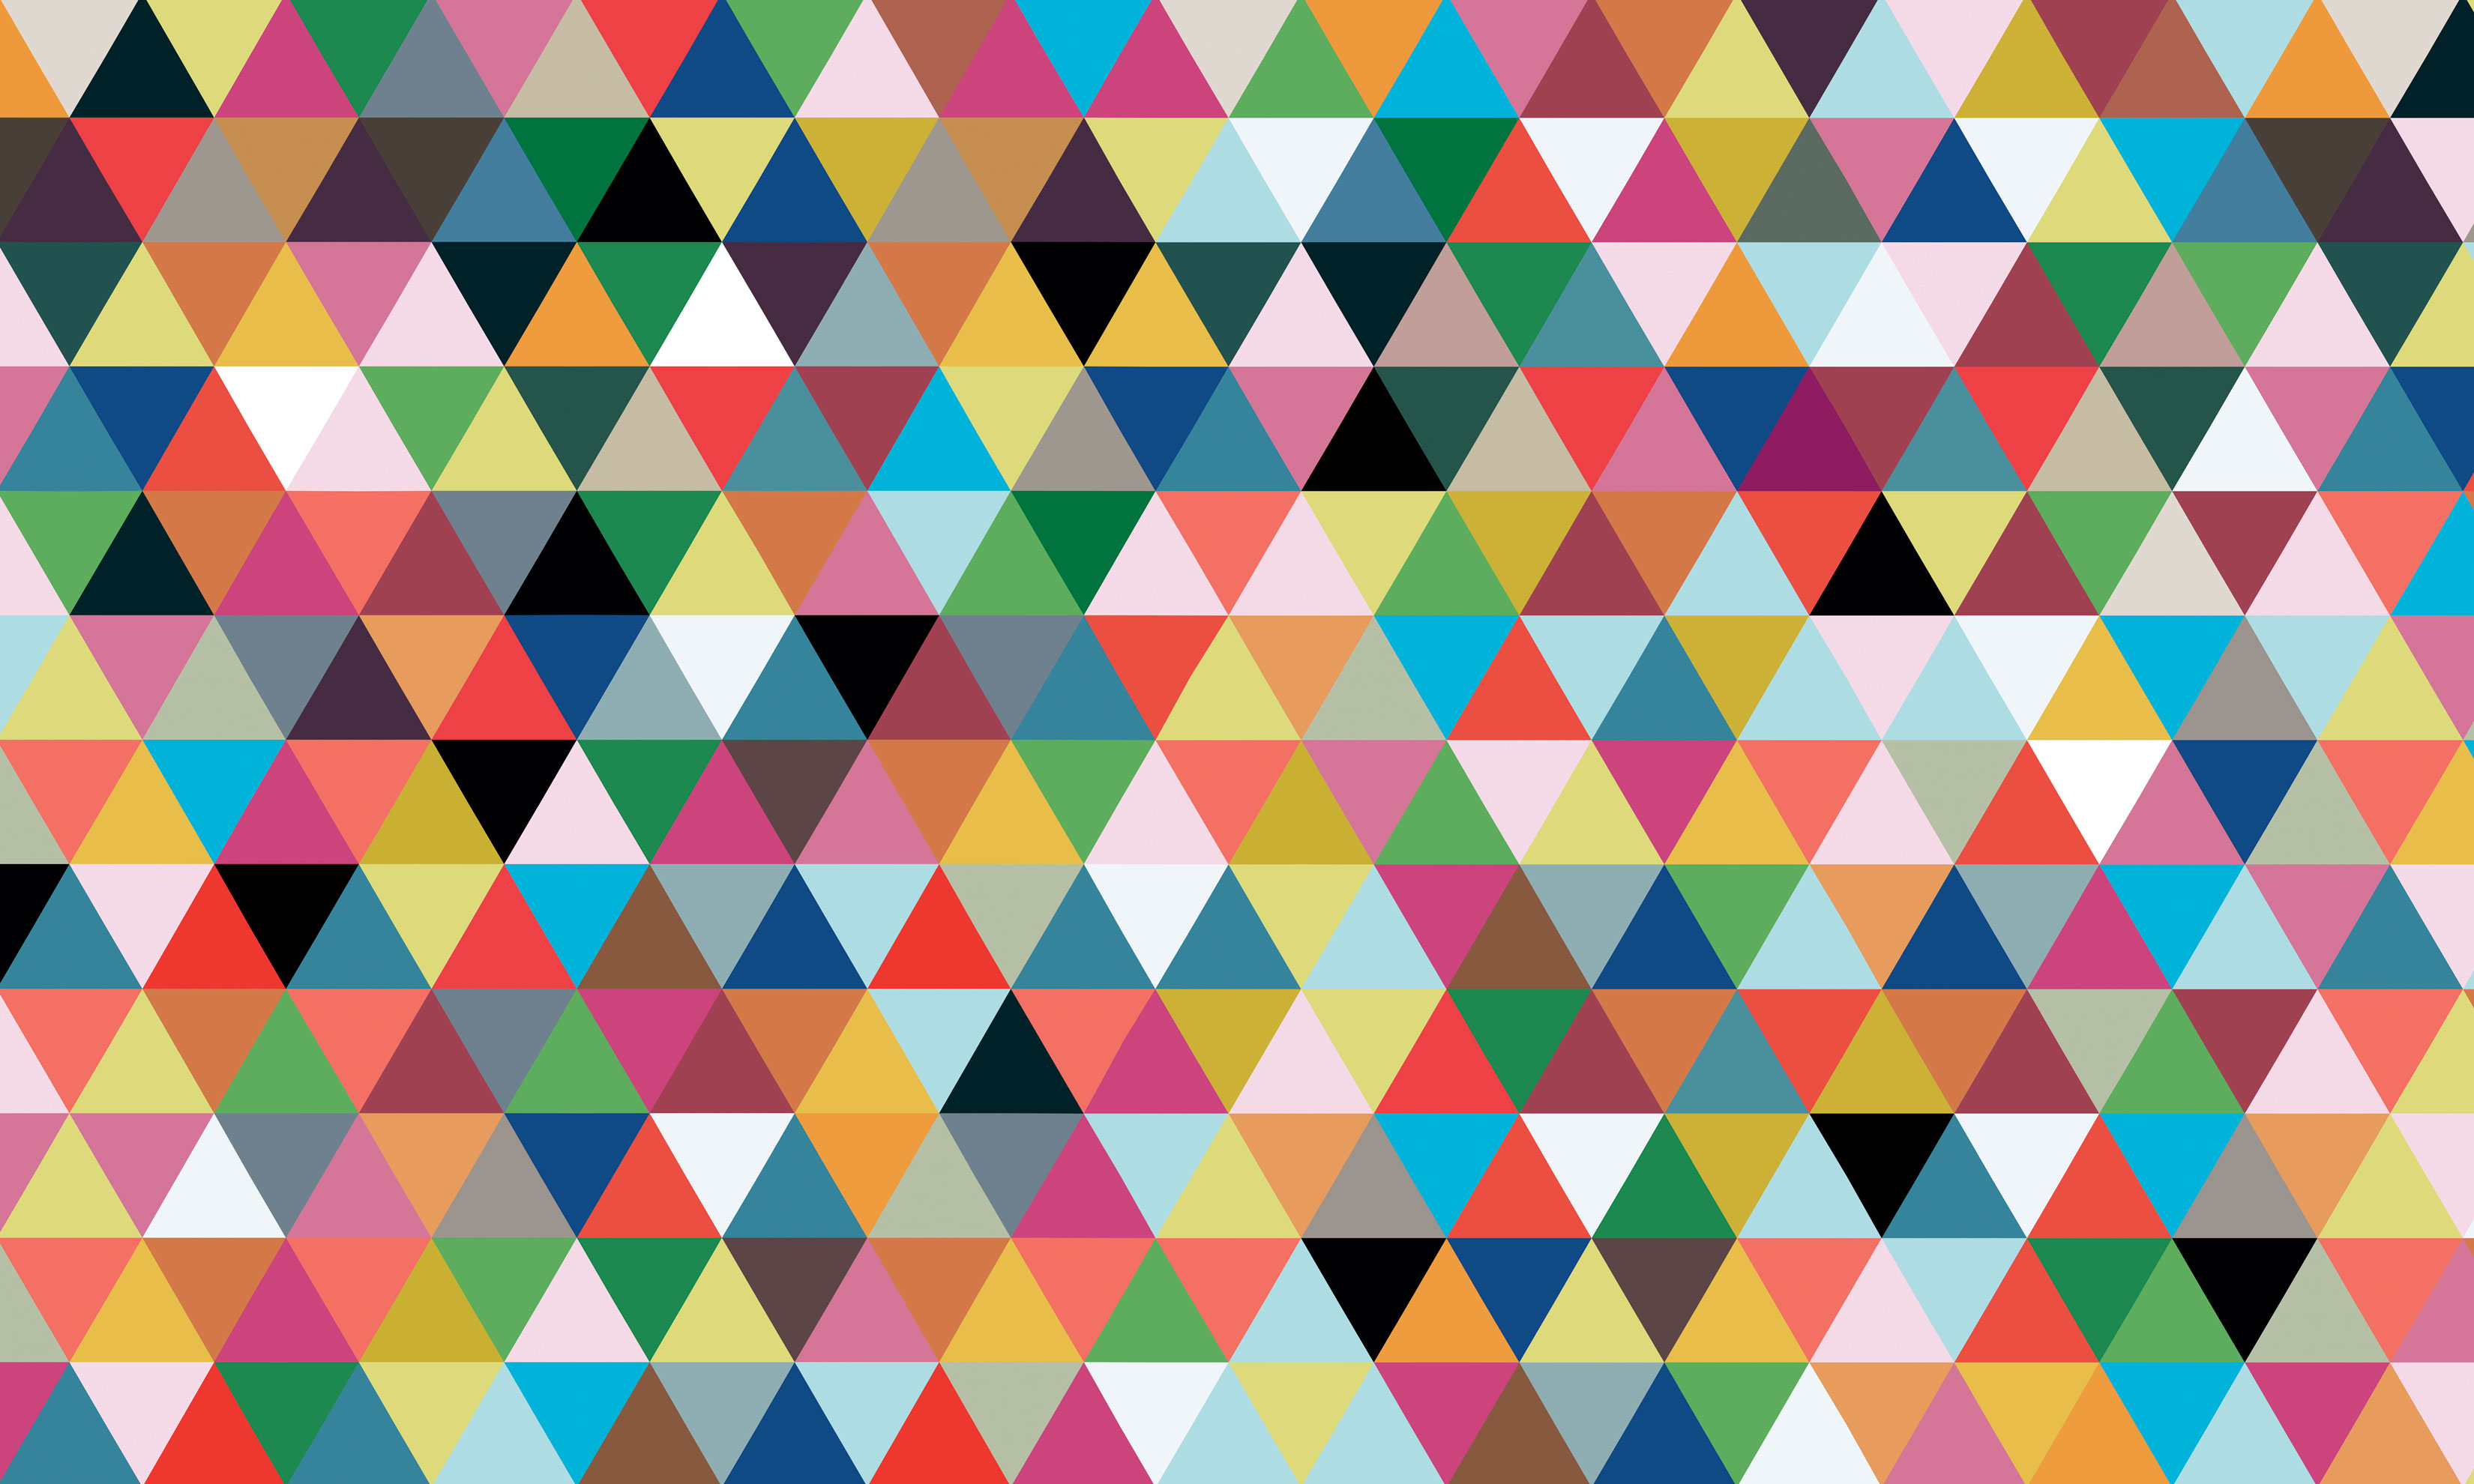 Geometric Triangle Wallpaper - WallpaperSafari